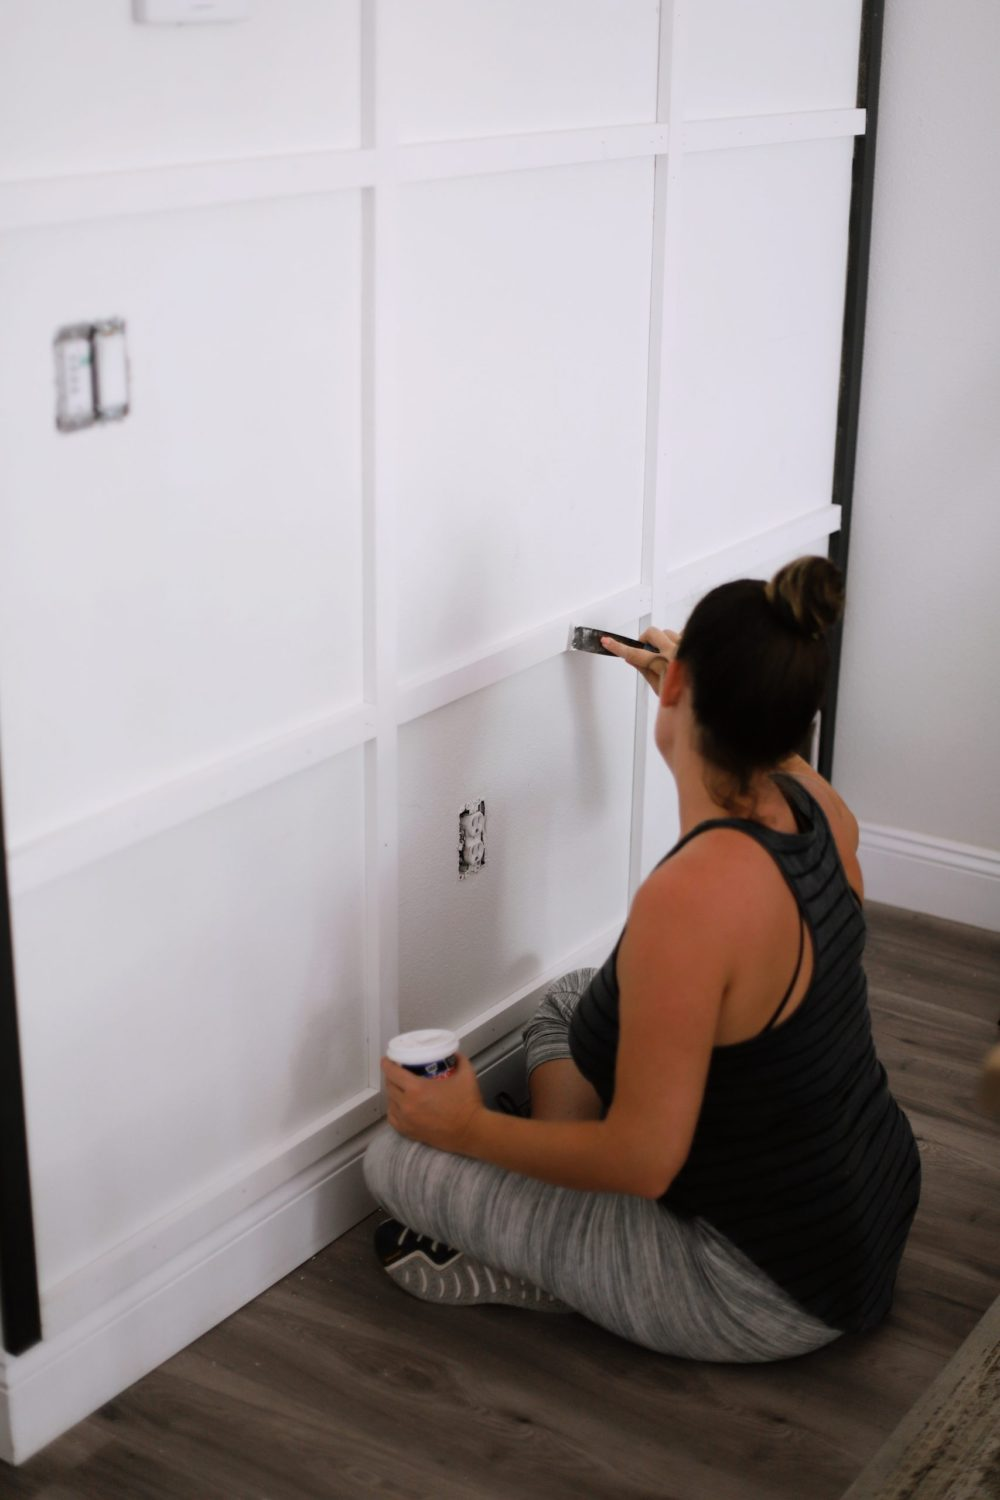 BEFORE AND AFTER Tutorial: DIY Wood Grid Wall! How to create a stunning and bold accent wall with a DIY wooden grid. Click for the full tutorial. | Tutorial: Board and Batten Grid Wall by popular Florida DIY blog, Fresh Mommy Blog: image of a woman painting some trim on her board and batten grid wall.